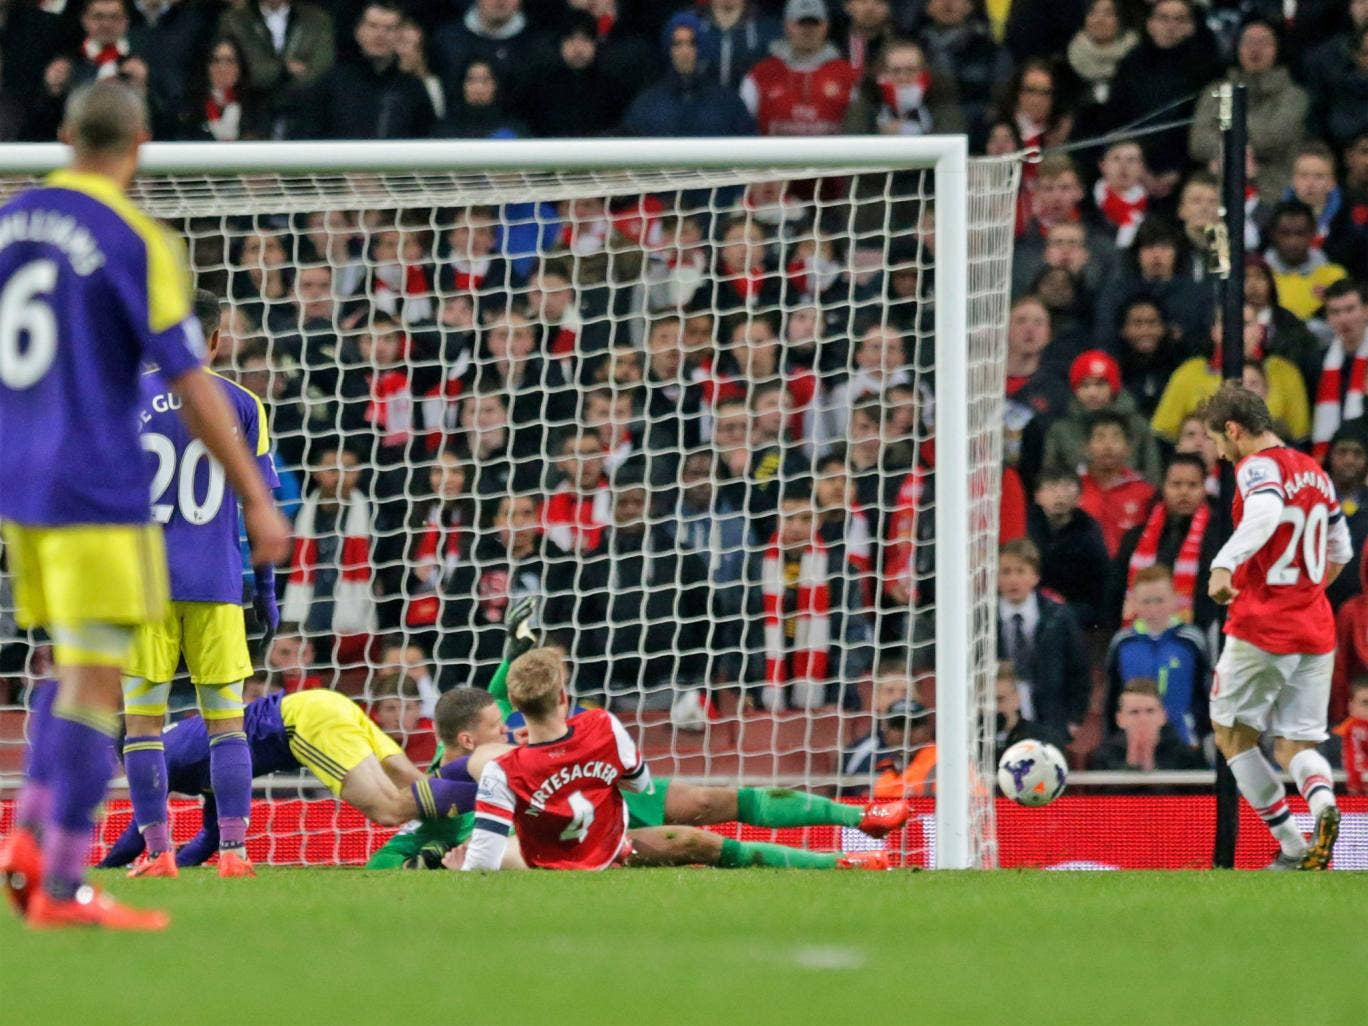 Mathieu Flamini scores a late own goal